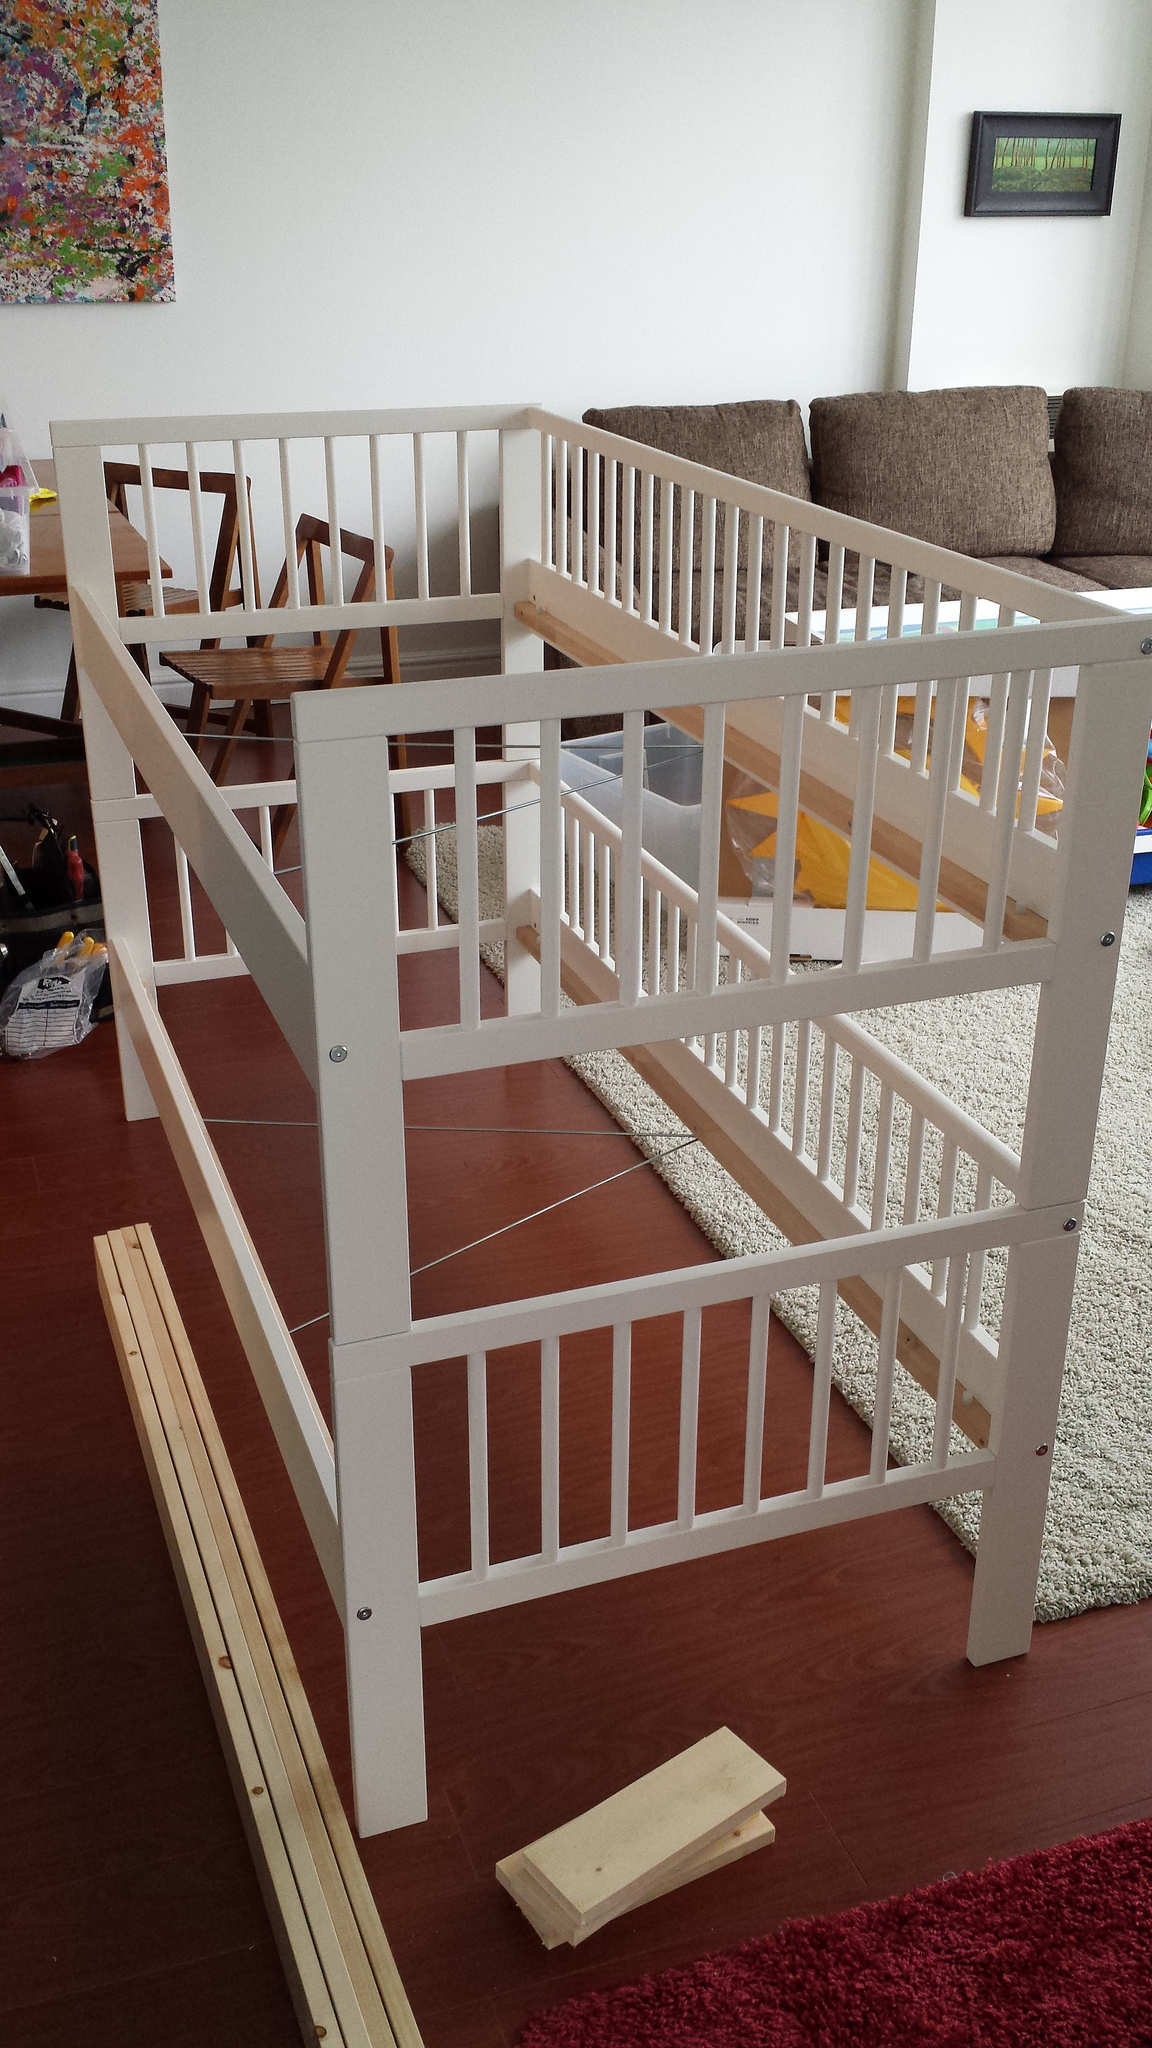 Ikea bunk beds for kids